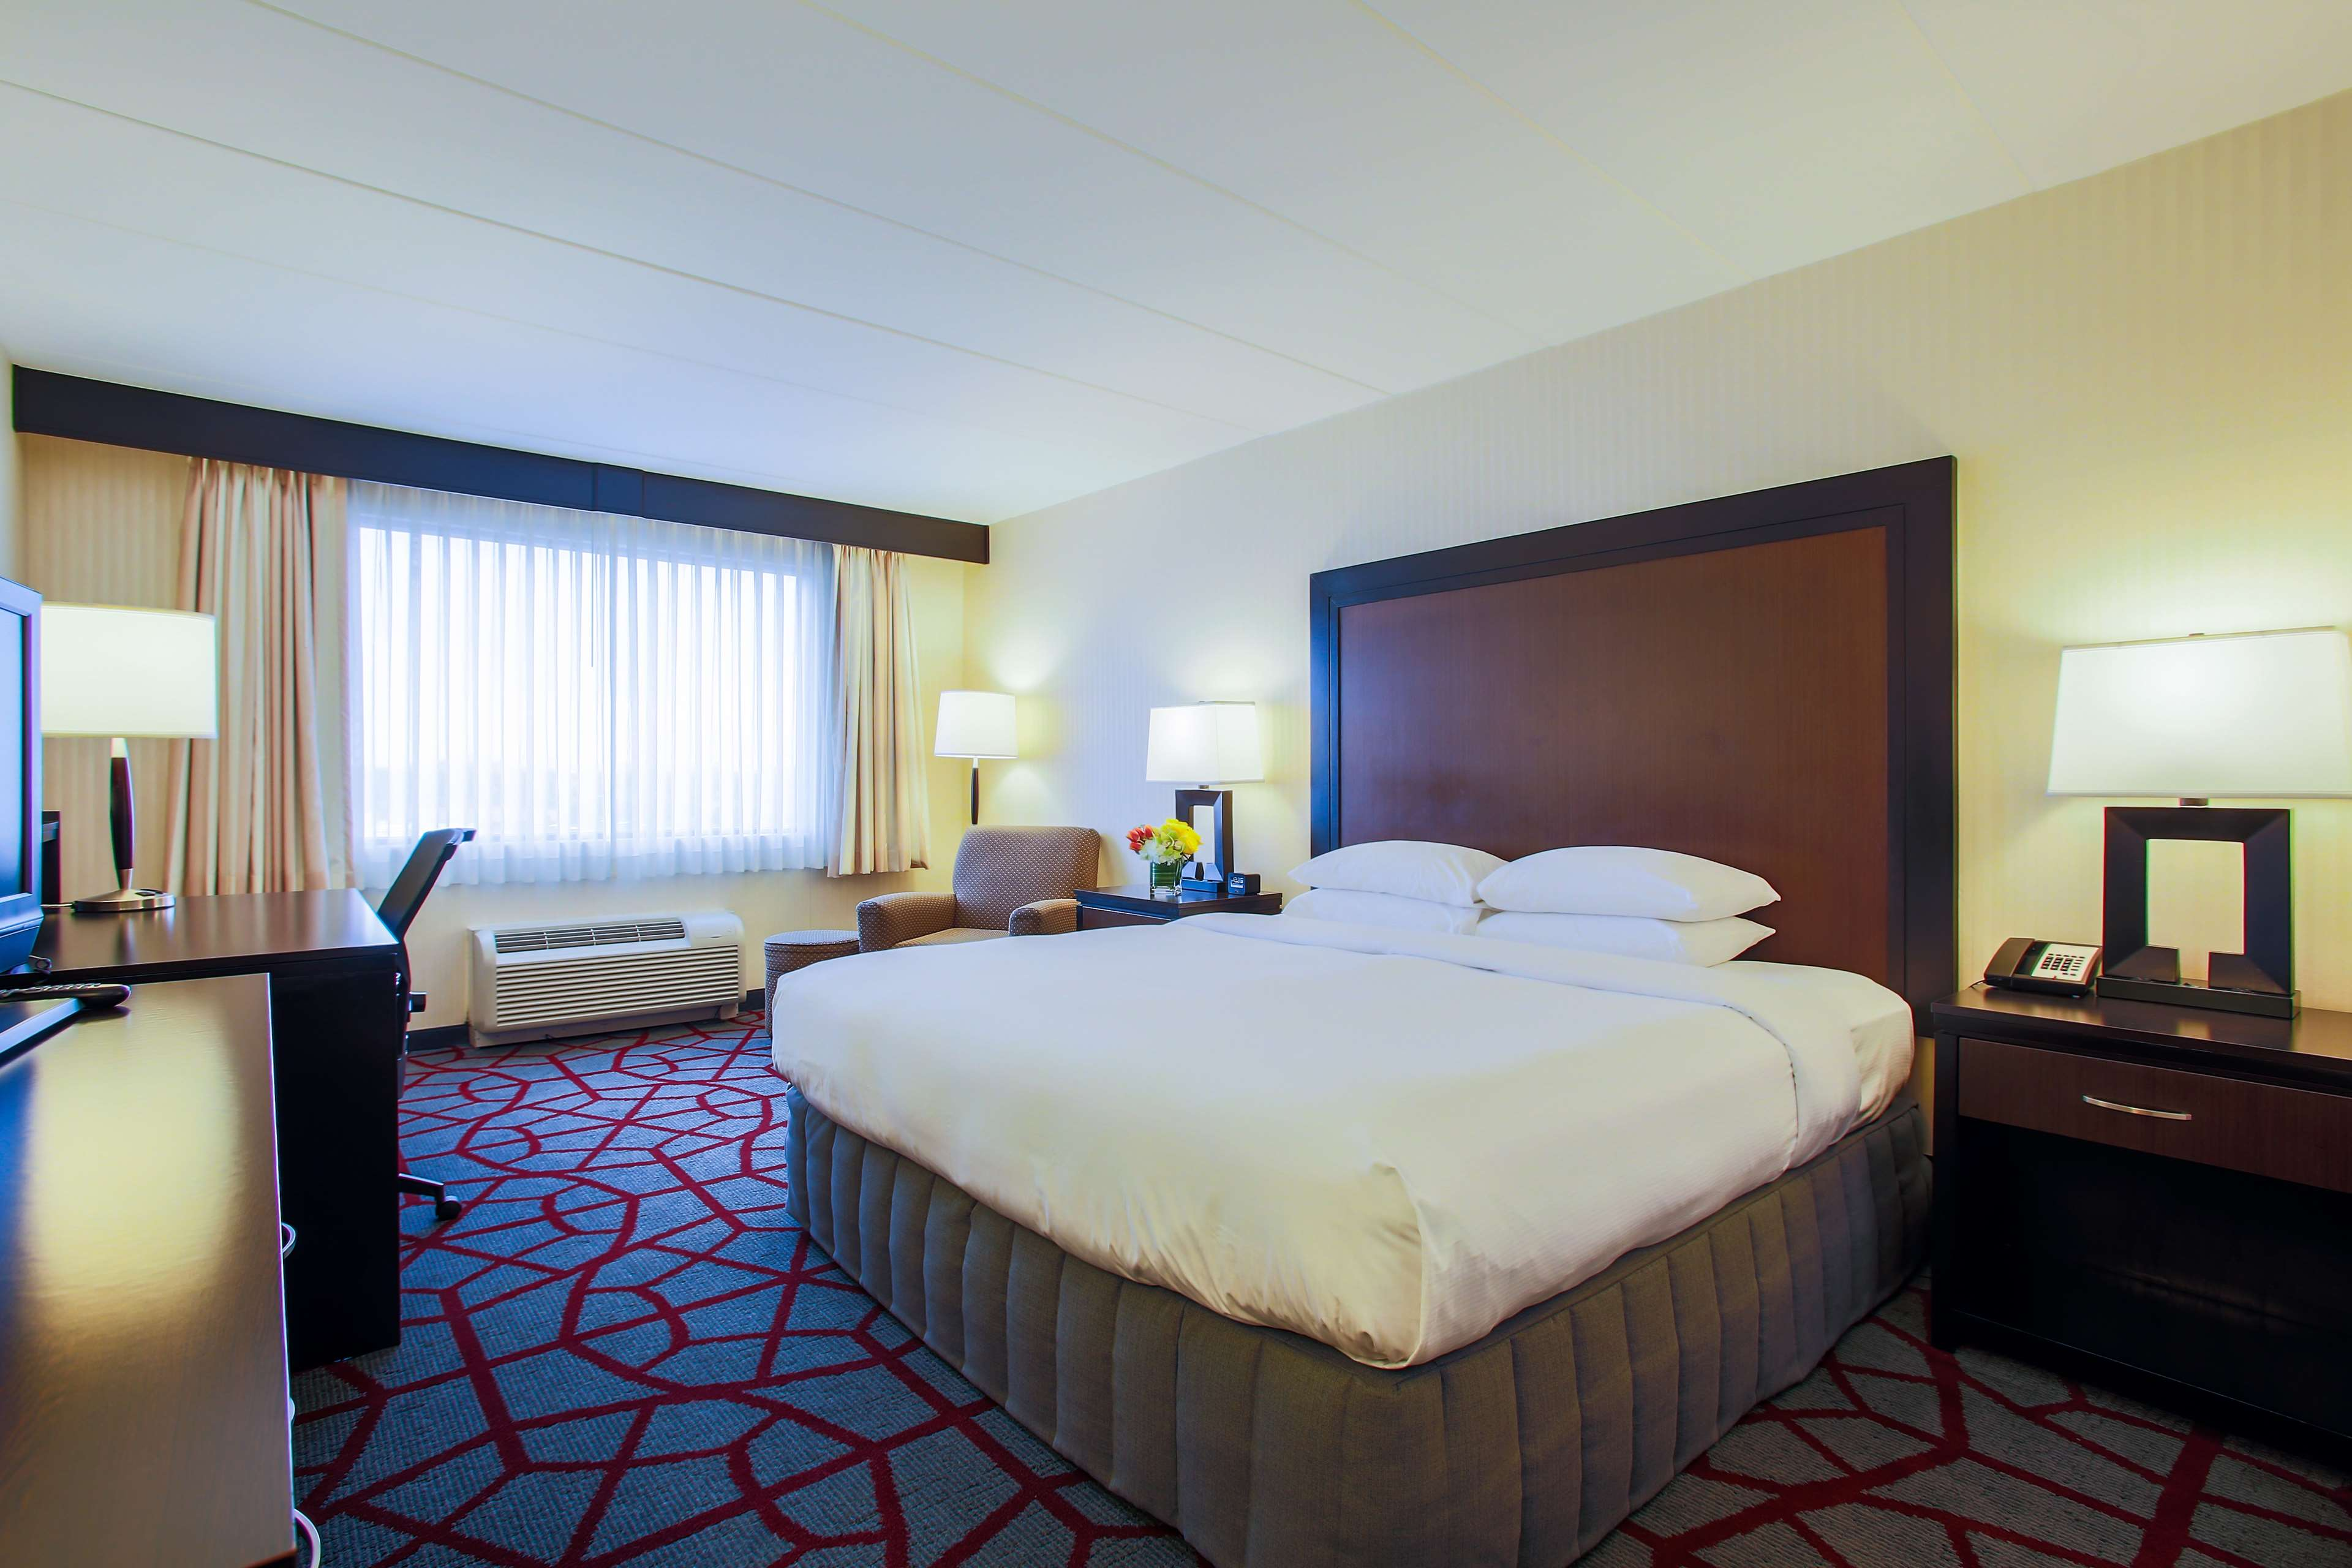 DoubleTree by Hilton Hotel Chicago - Alsip image 12